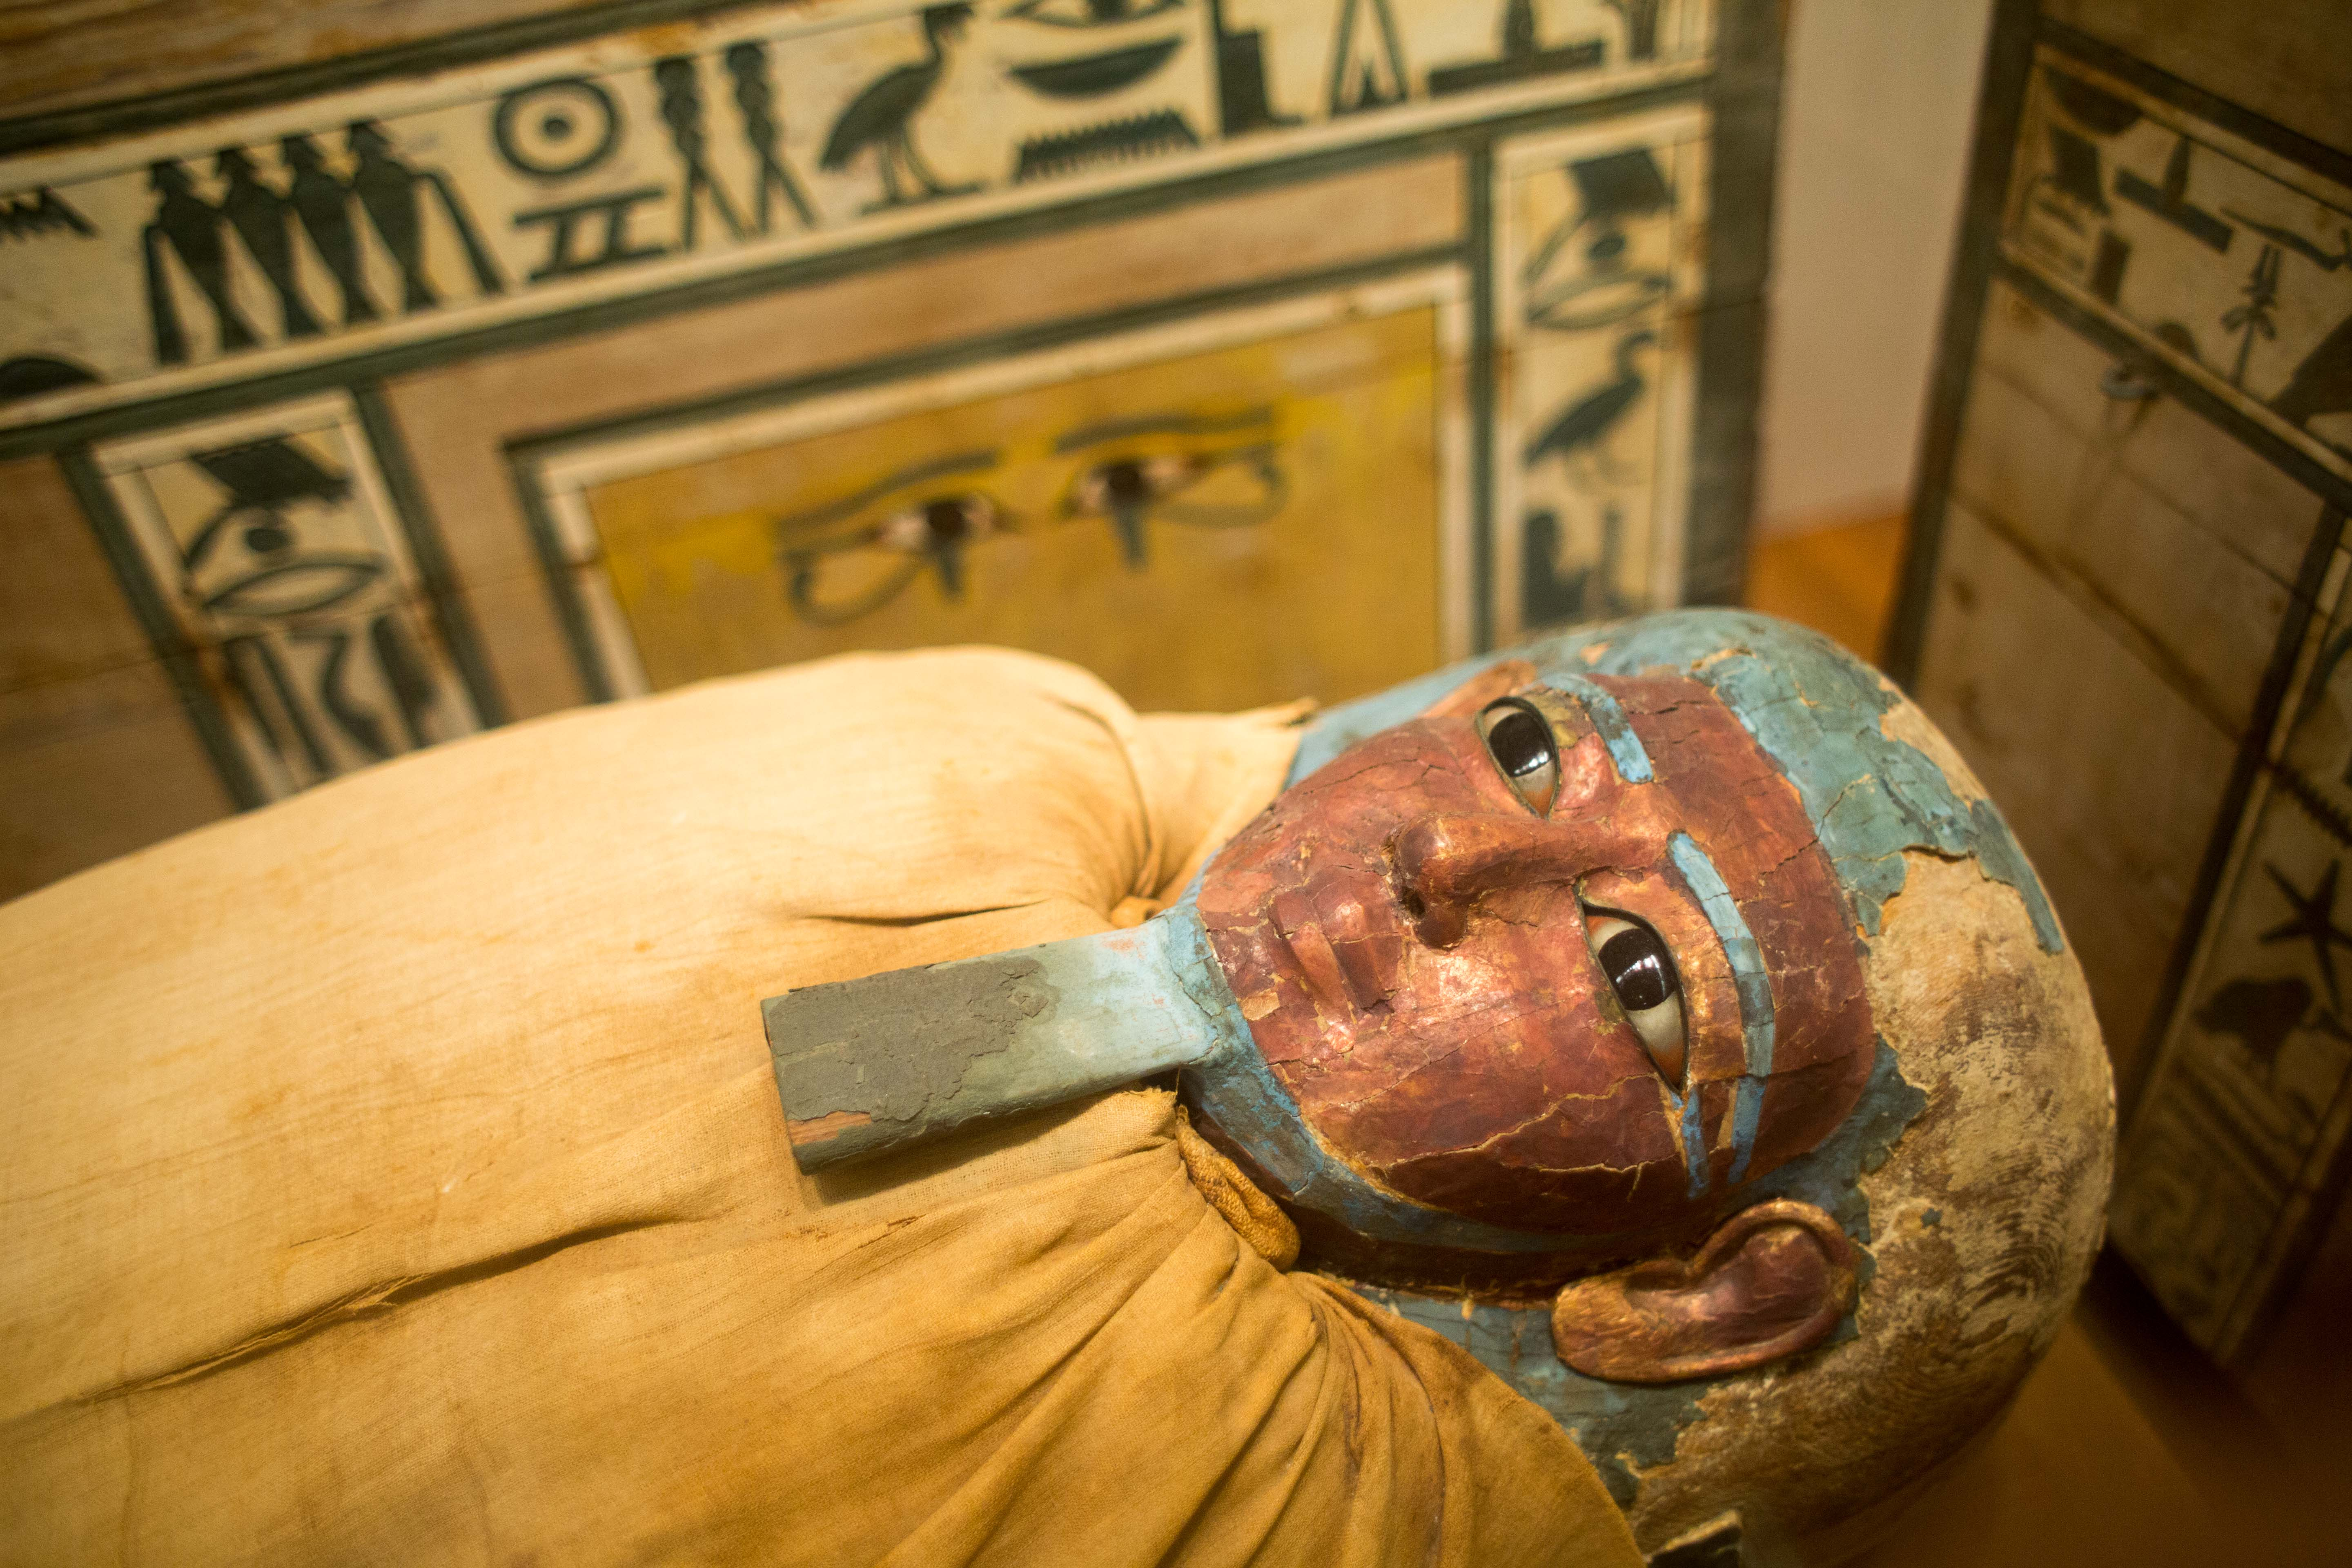 May 30, · The Metropolitan Museum of Art: Mummies! Rows and rows of them! - See 50, traveler reviews, 24, candid photos, and great deals for New York City, NY, at TripAdvisor.5/5.